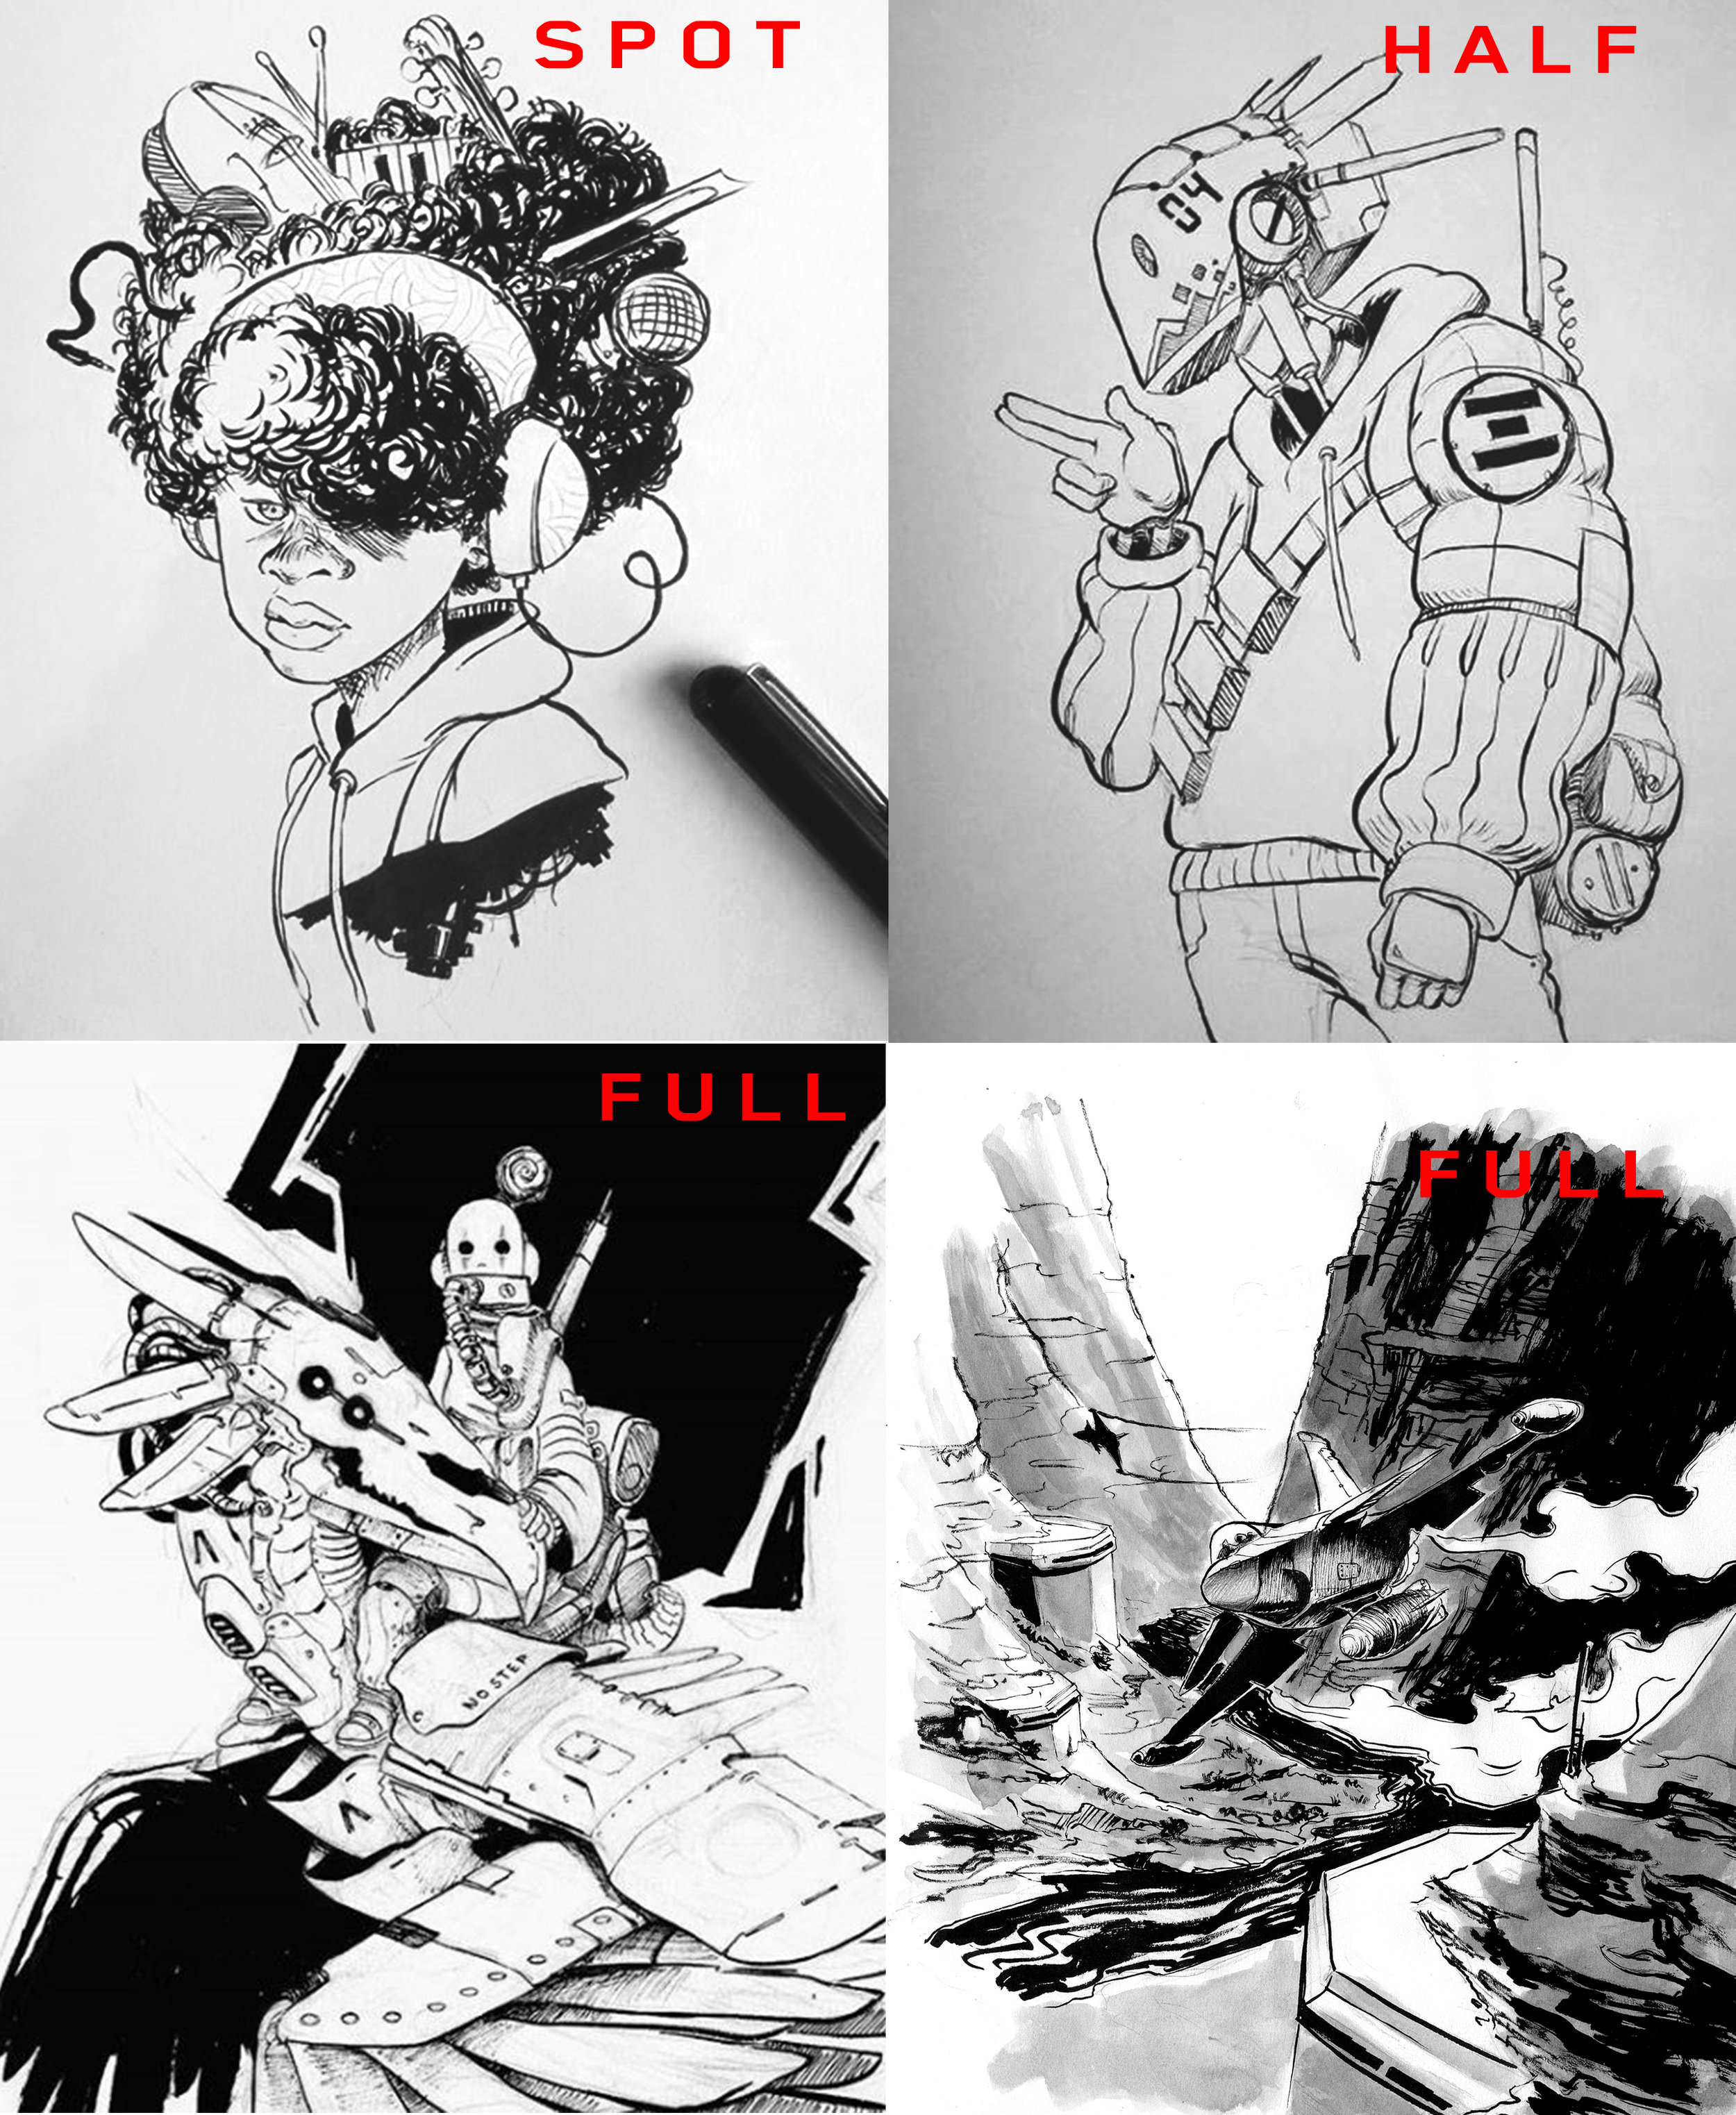 INKED - Spot - $40Half page - $50Full page - $65